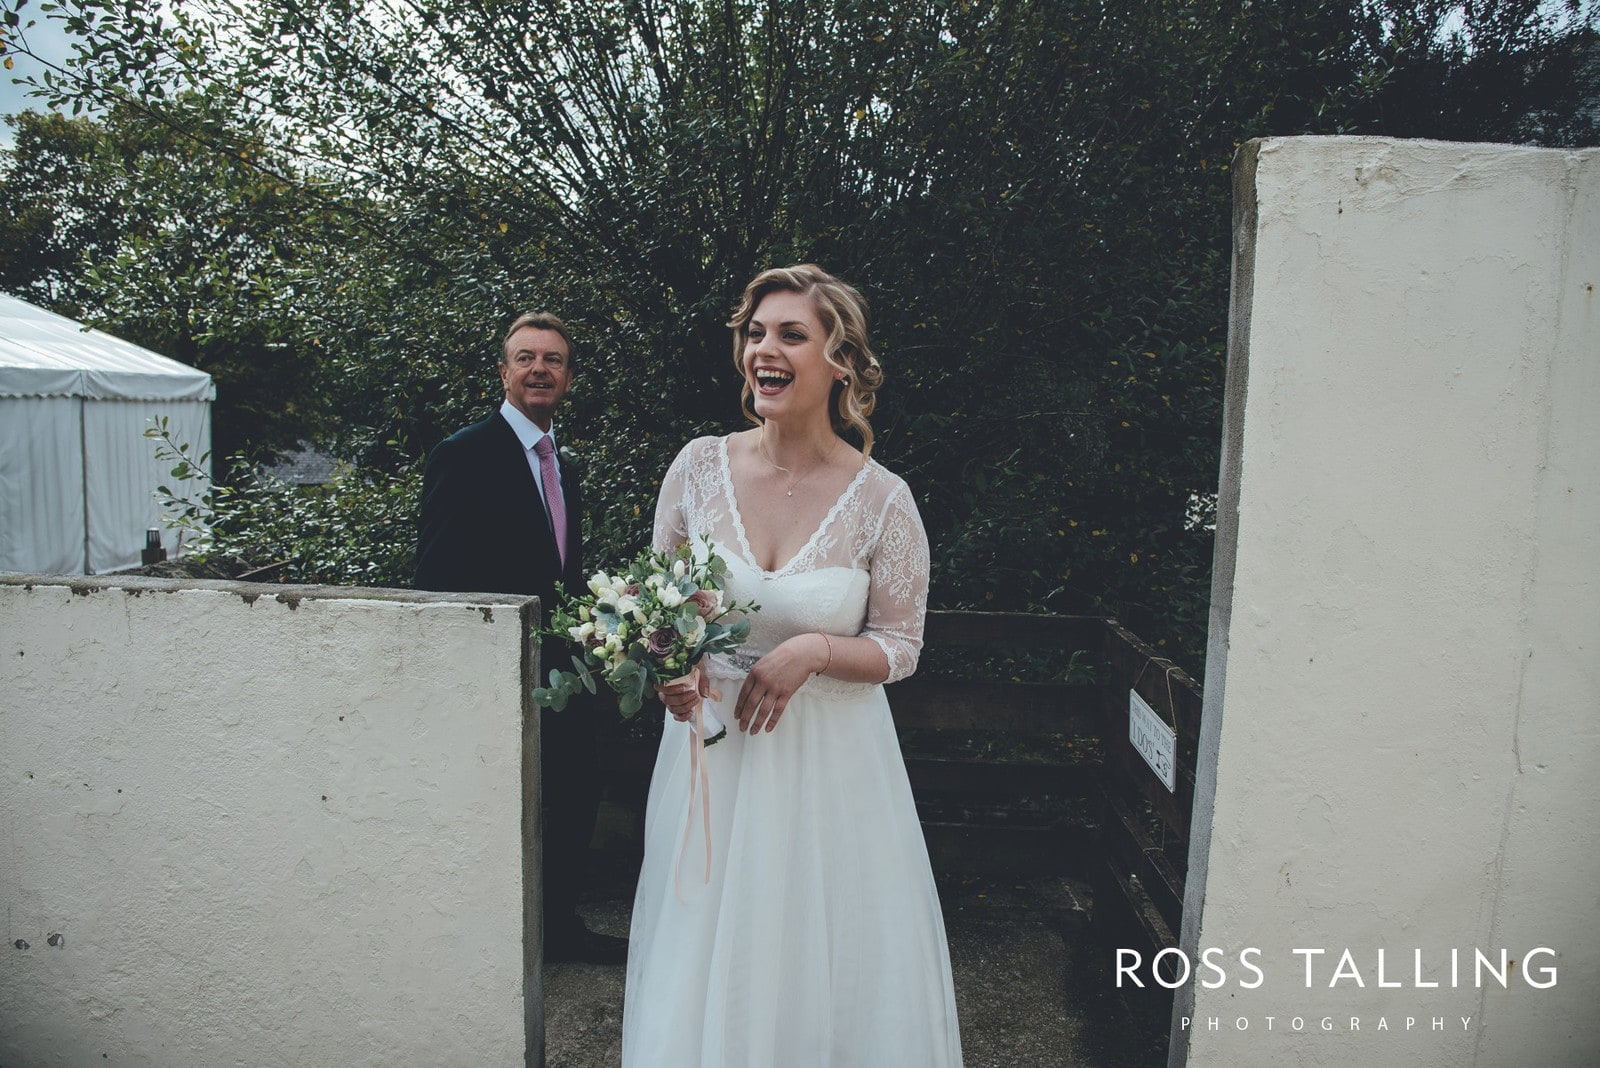 Wedding Photography at The Green Cornwall by Ross Talling_0013